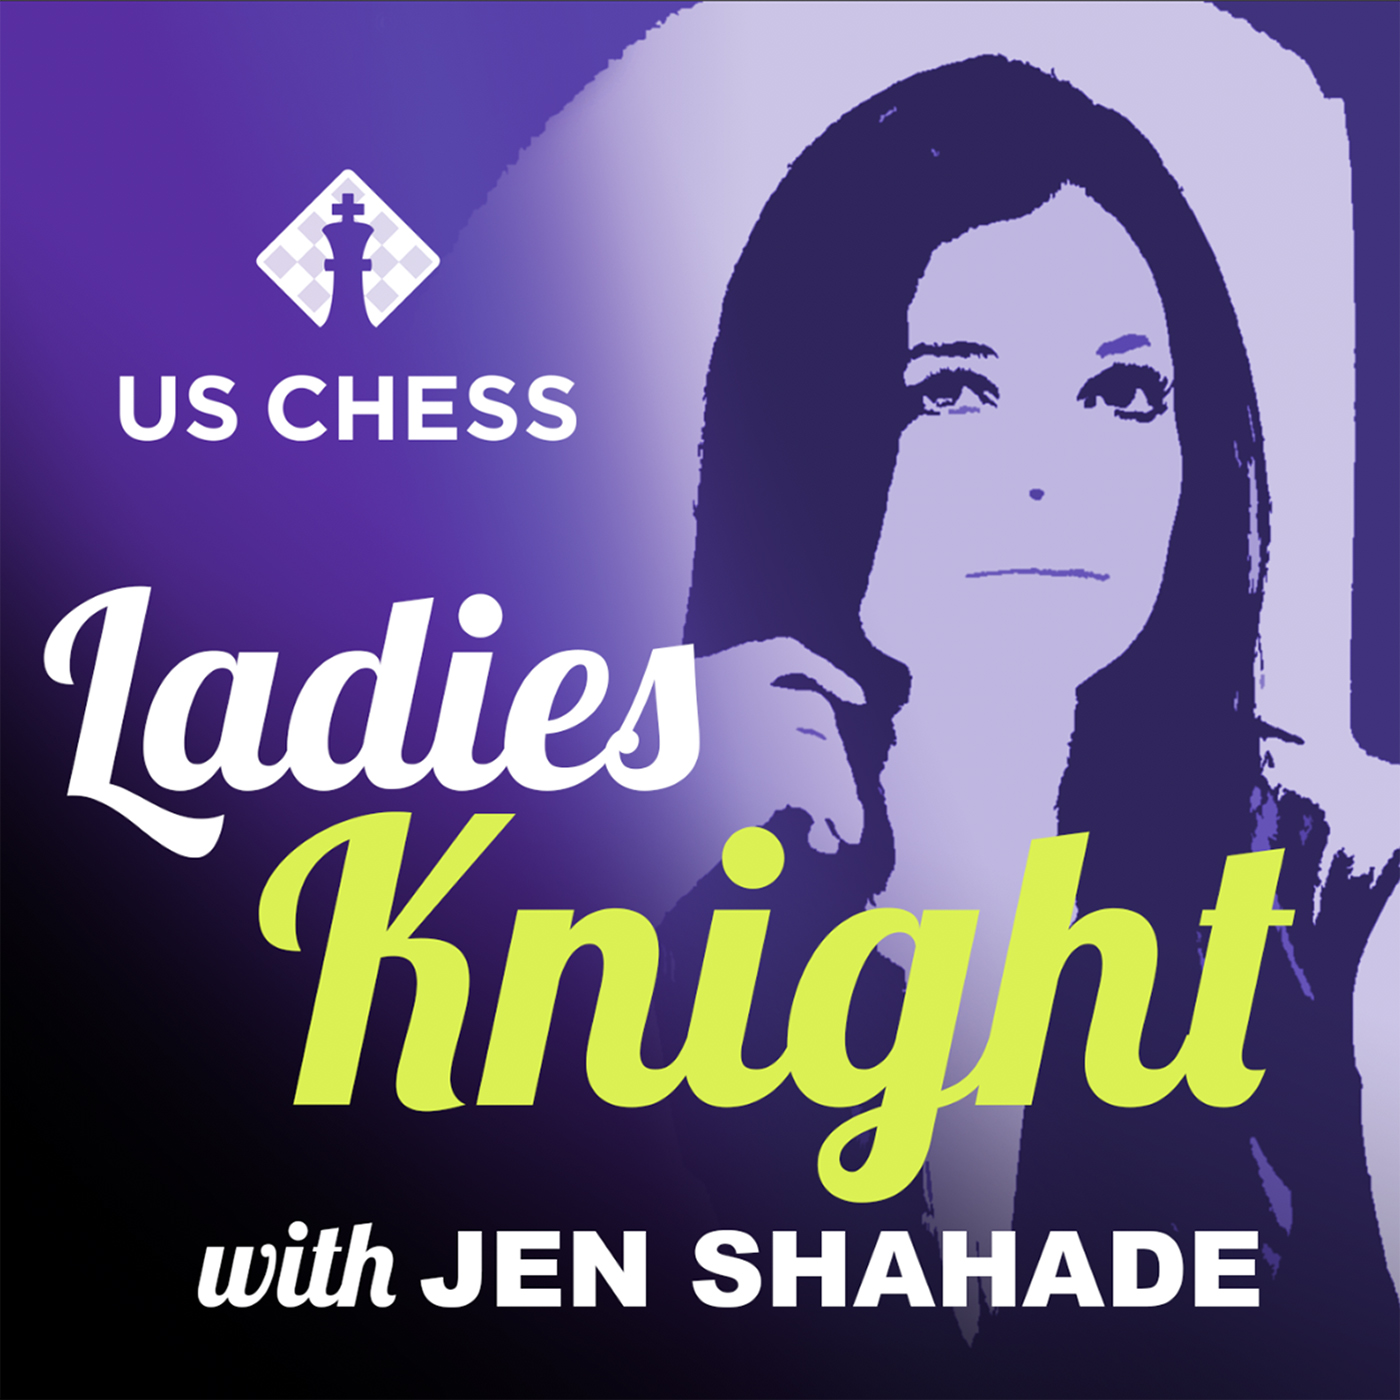 Ladies Knight Chess